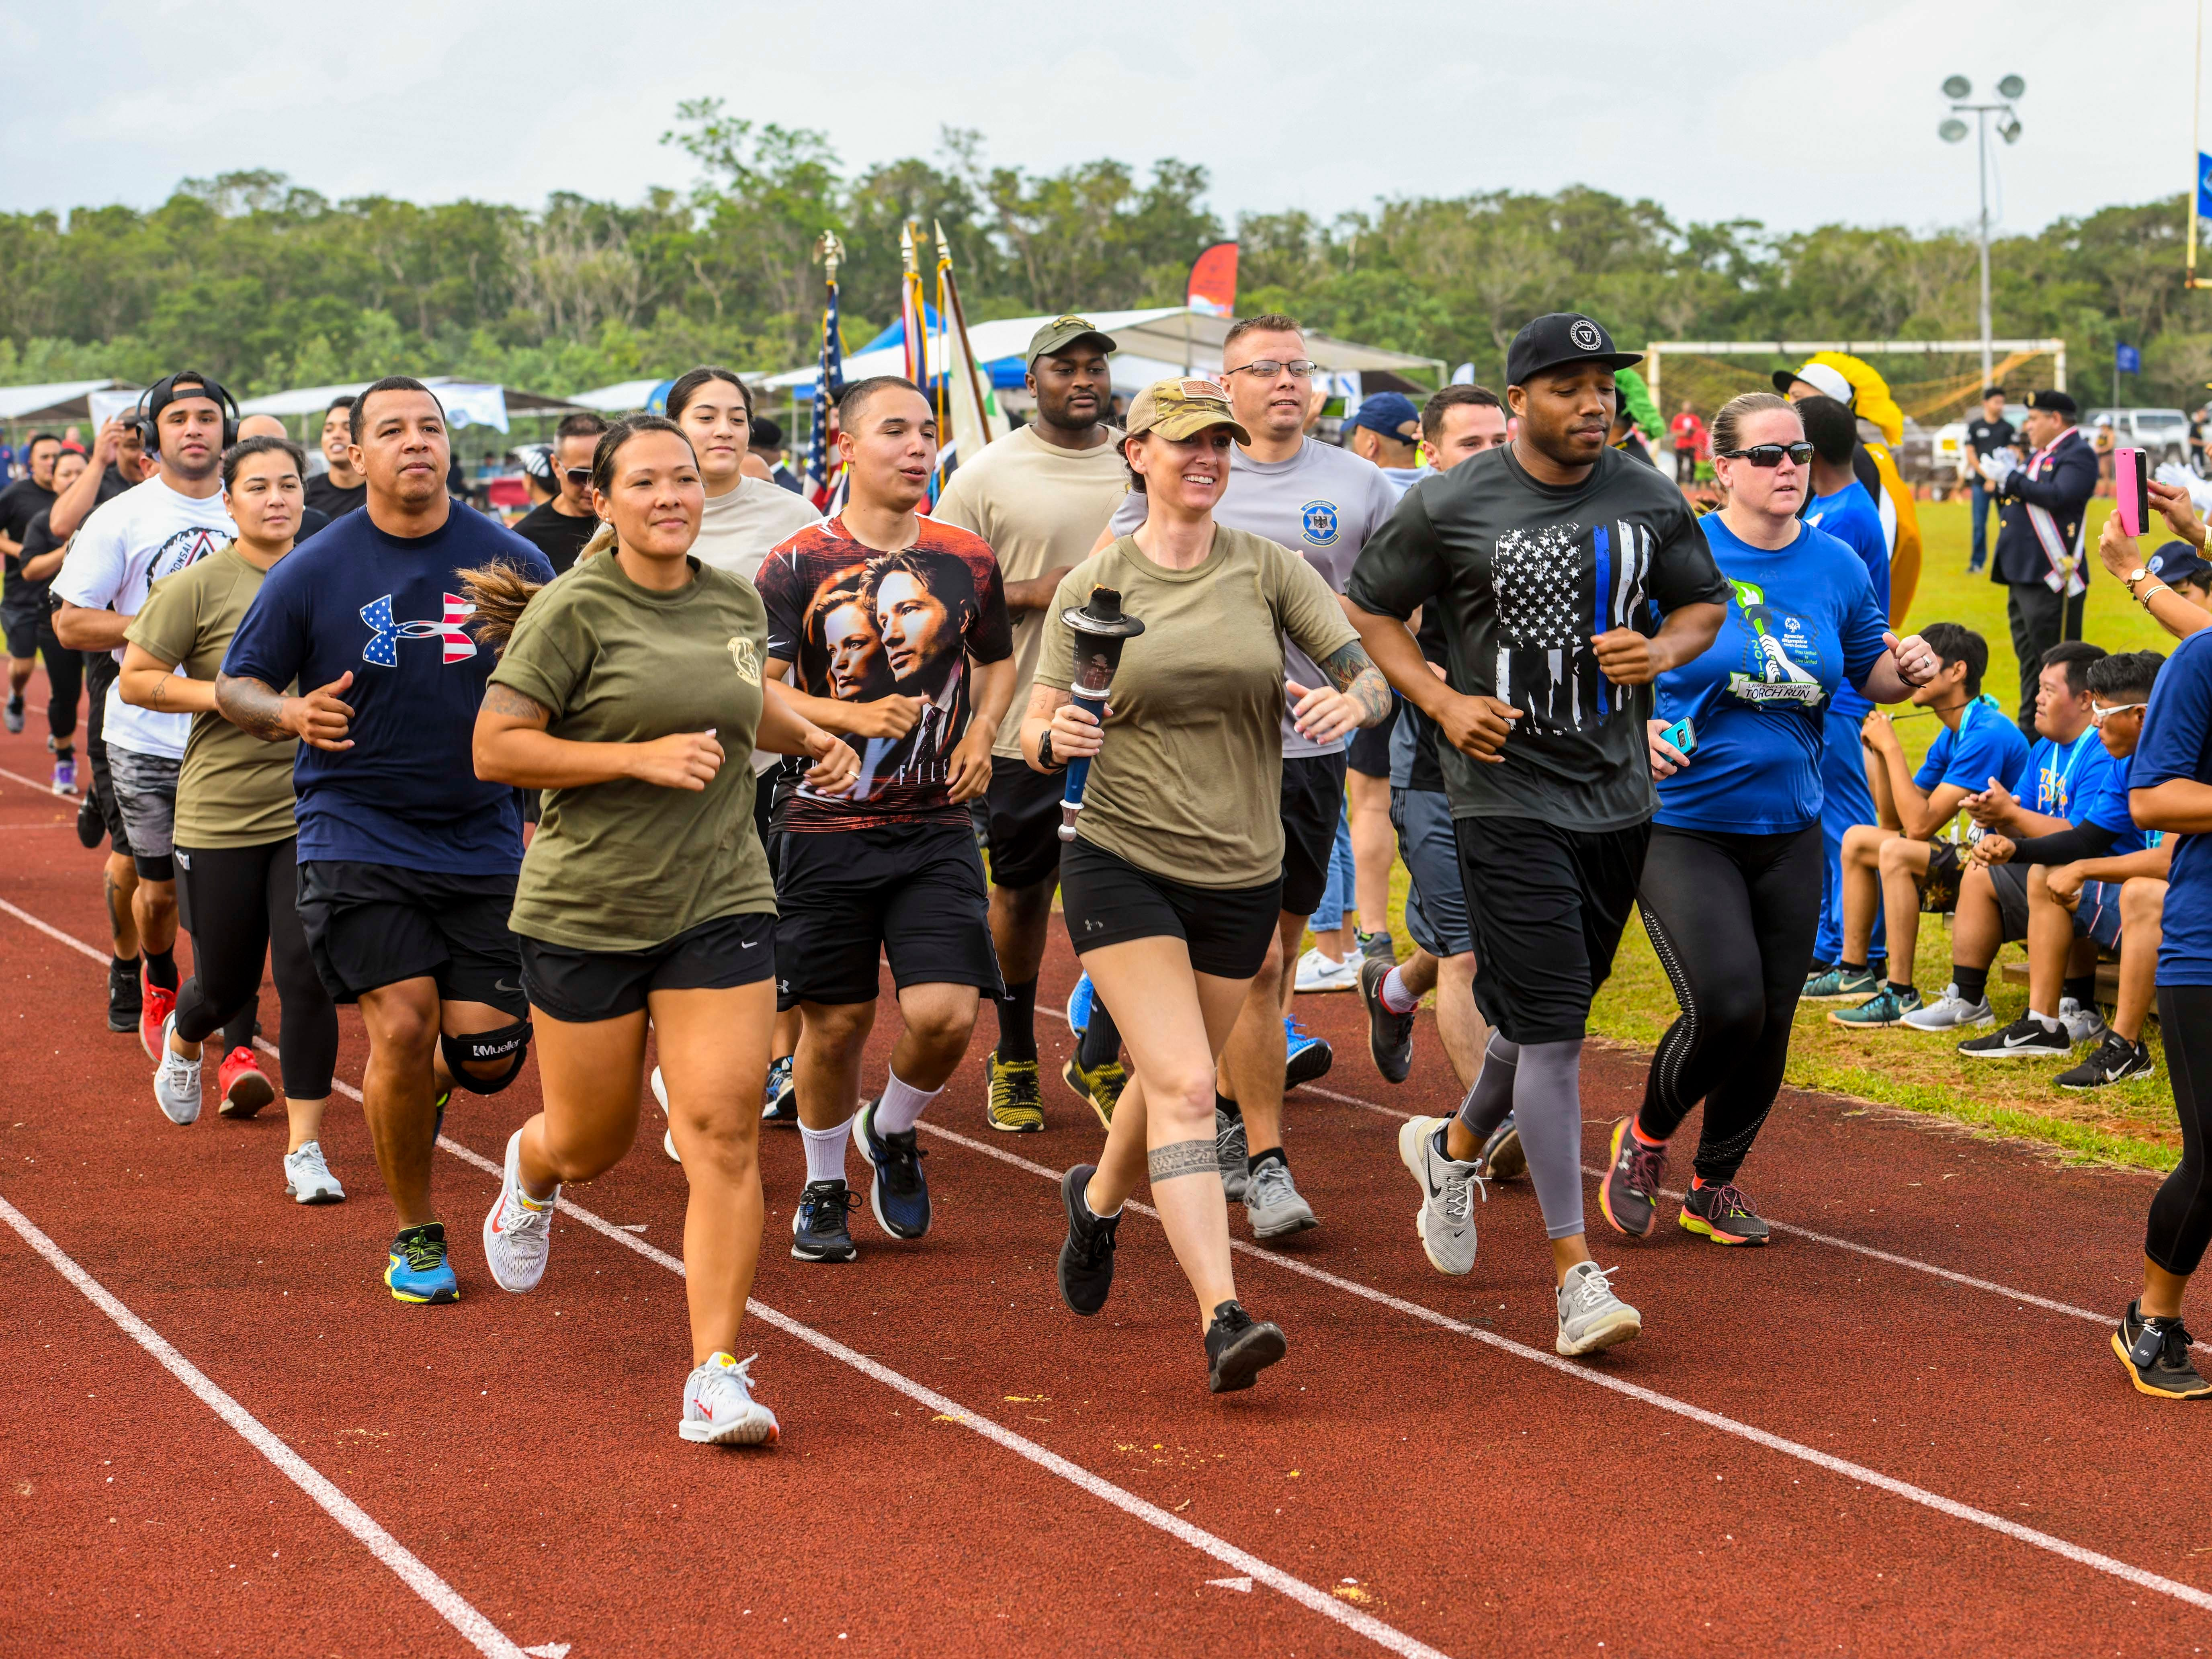 Torch relay carriers gather together for a lap around the track before passing the flame to Special Olympians for their relay lap during the 43rd Special Olympics Guam Track & Field competition at Okkodo High School in Dededo on Saturday, March 16, 2019. Runners, from the local and military sectors, joined forces as they passed the flame in a relay fashion starting at the entrance of Naval Base Guam and proceeded to the Okkodo High School for the event.